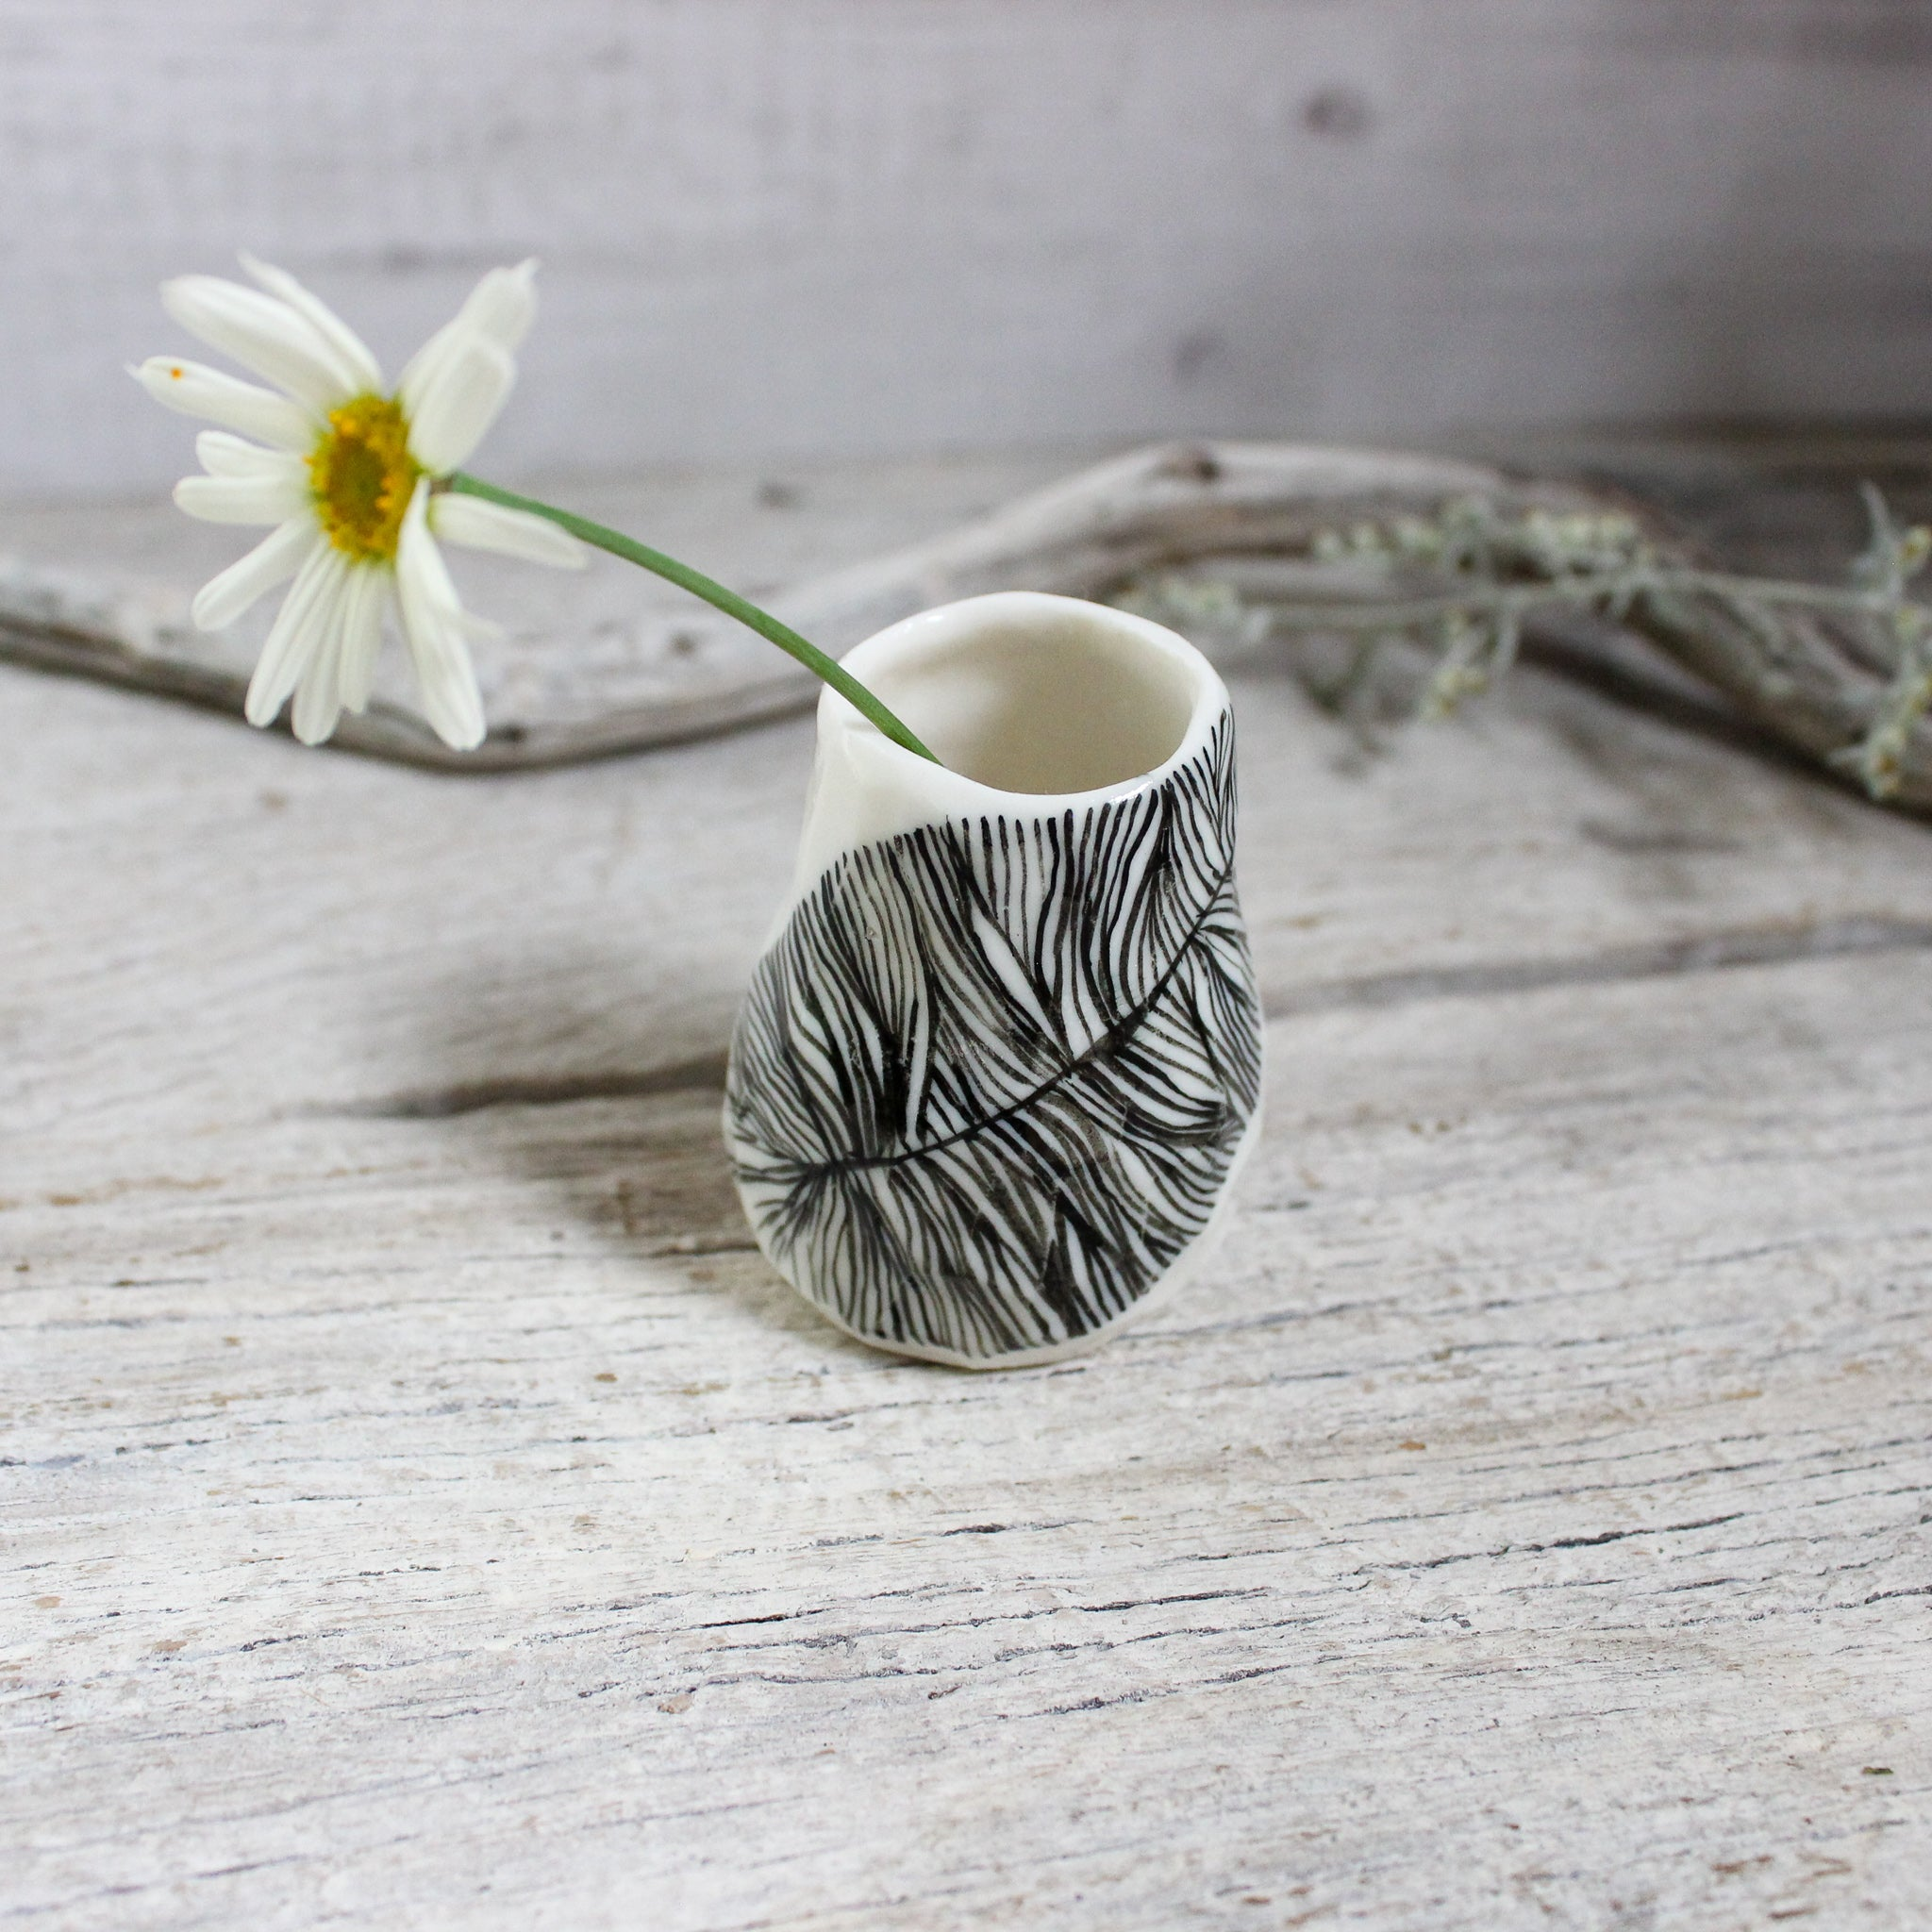 Tiny Feather Bud Vase